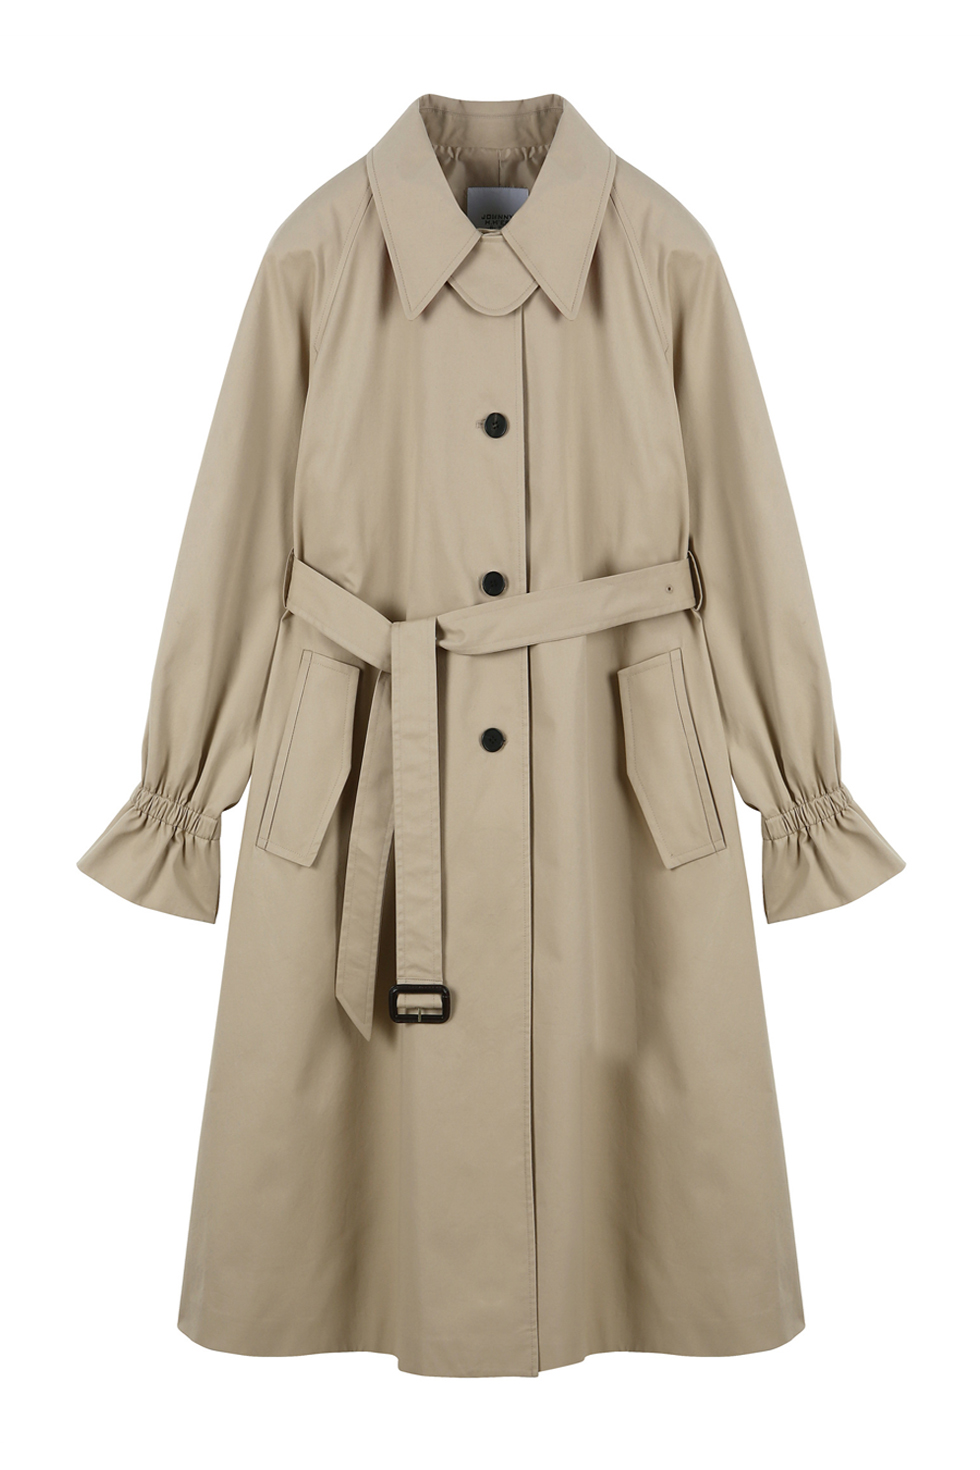 TWO-TONE TRENCH COAT- BEIGE